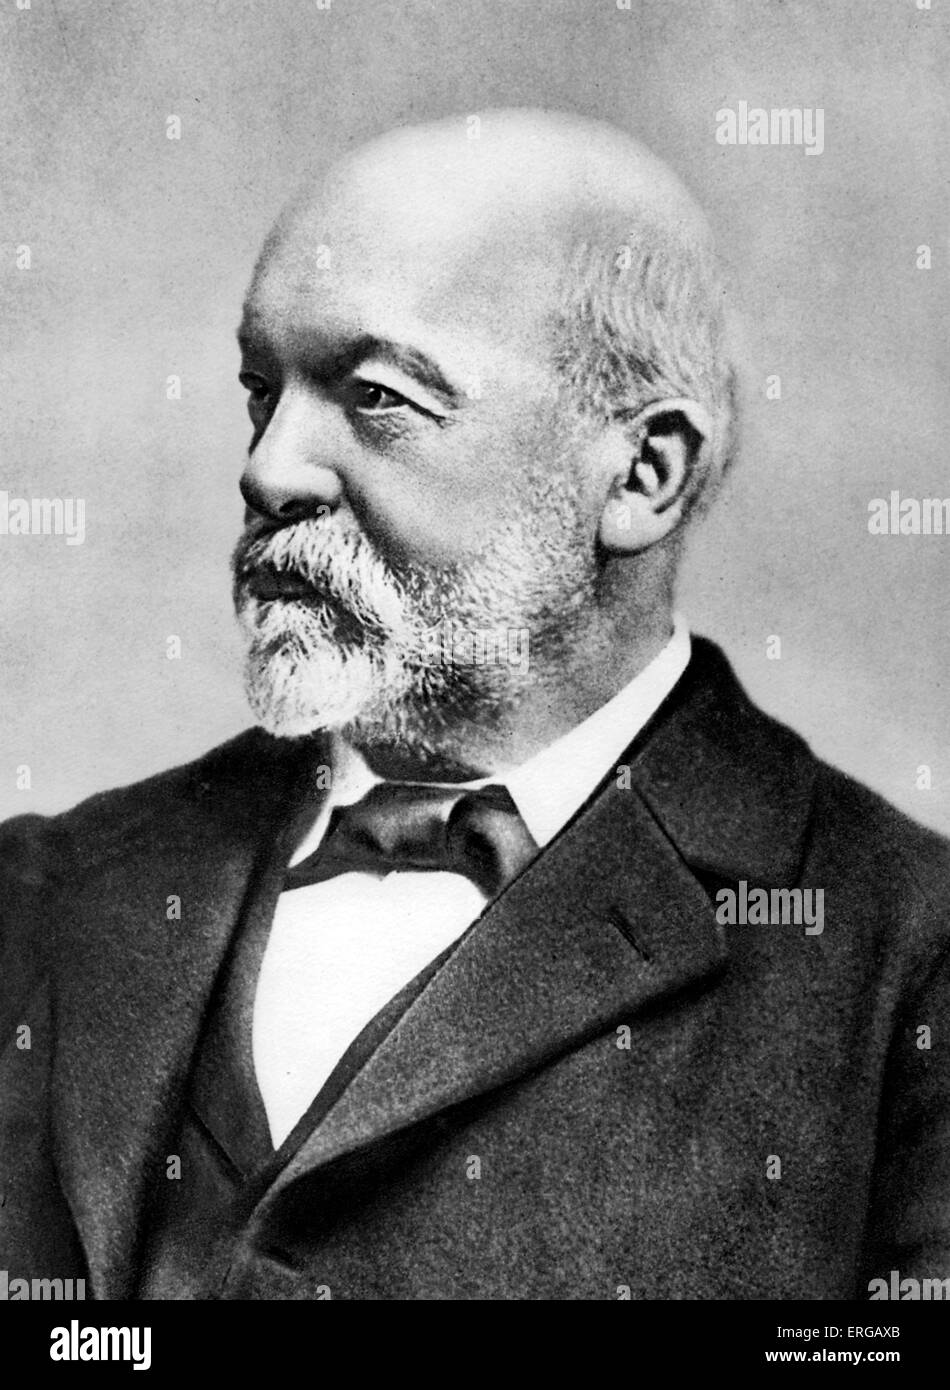 Gottlieb Daimler (17 March 1834 – 6 March 1900) -German pioneer of internal-combustion engines and automobile development; - Stock Image